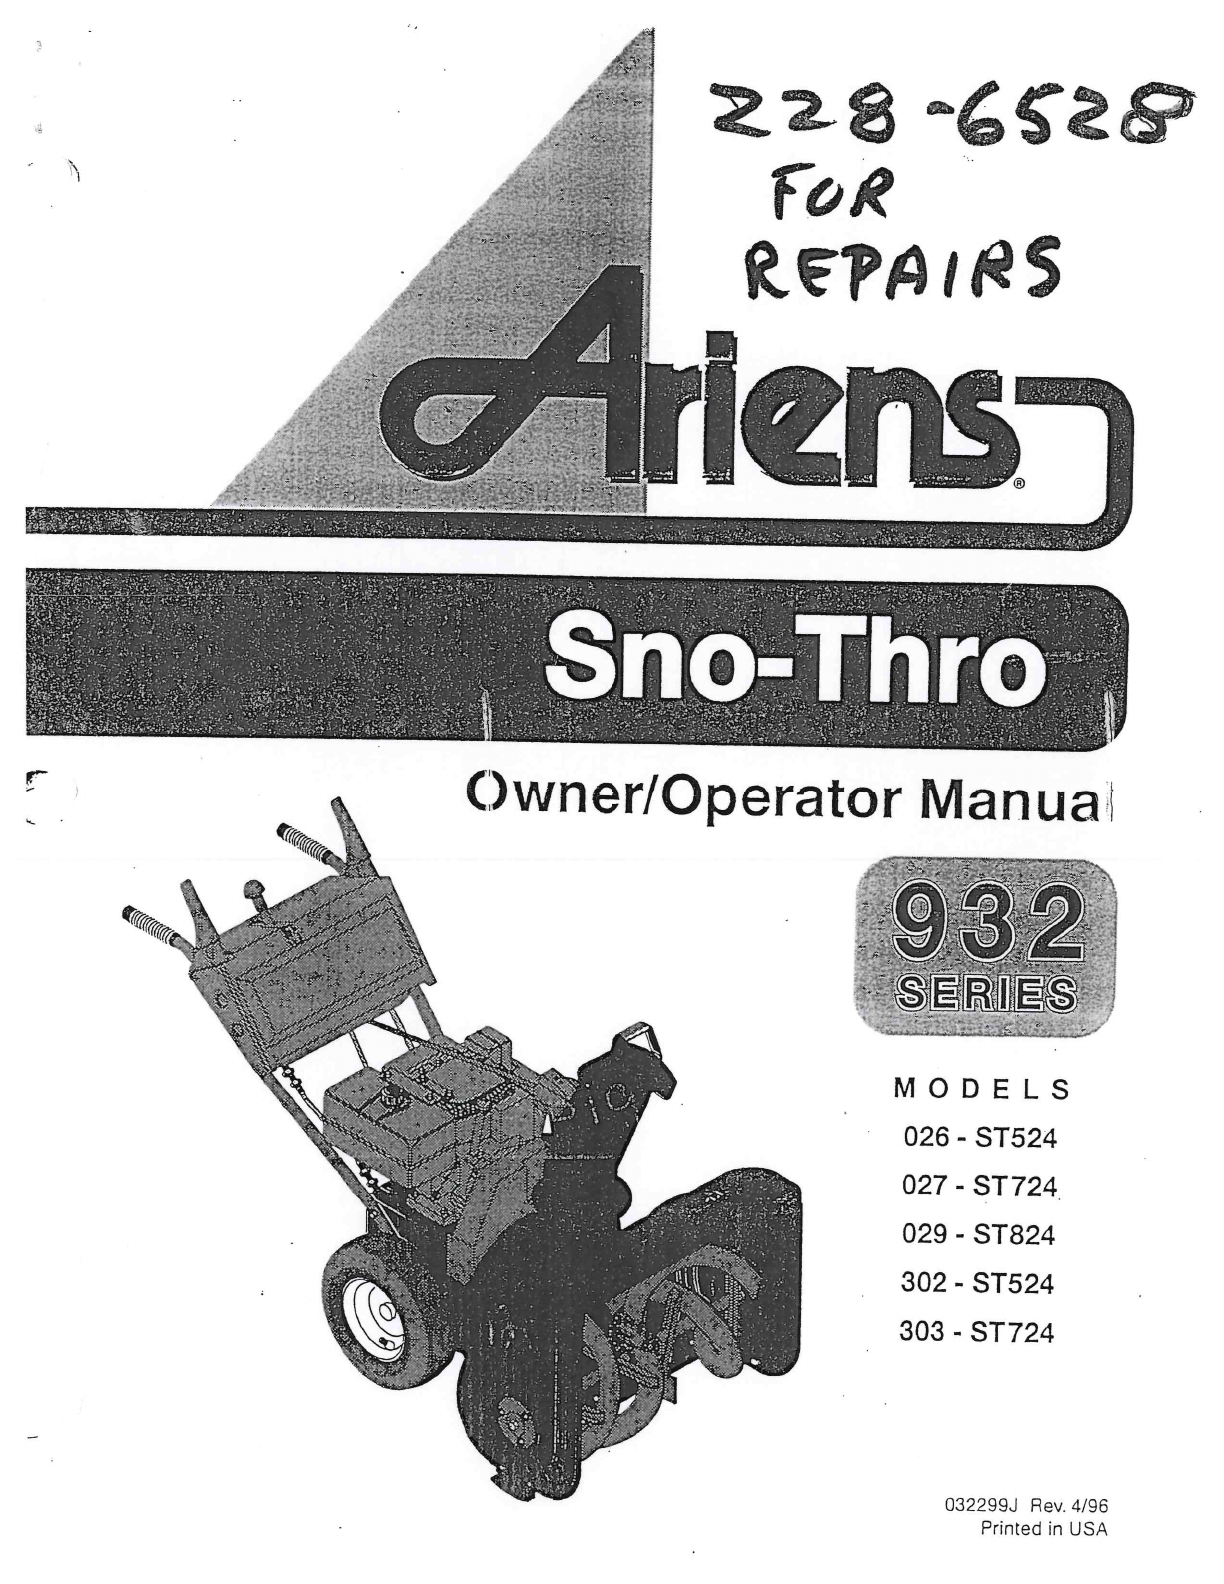 ariens snow blower 029 st824 user guide manualsonline com rh lawnandgarden manualsonline com ariens 824 engine manual ariens st824 owners manual